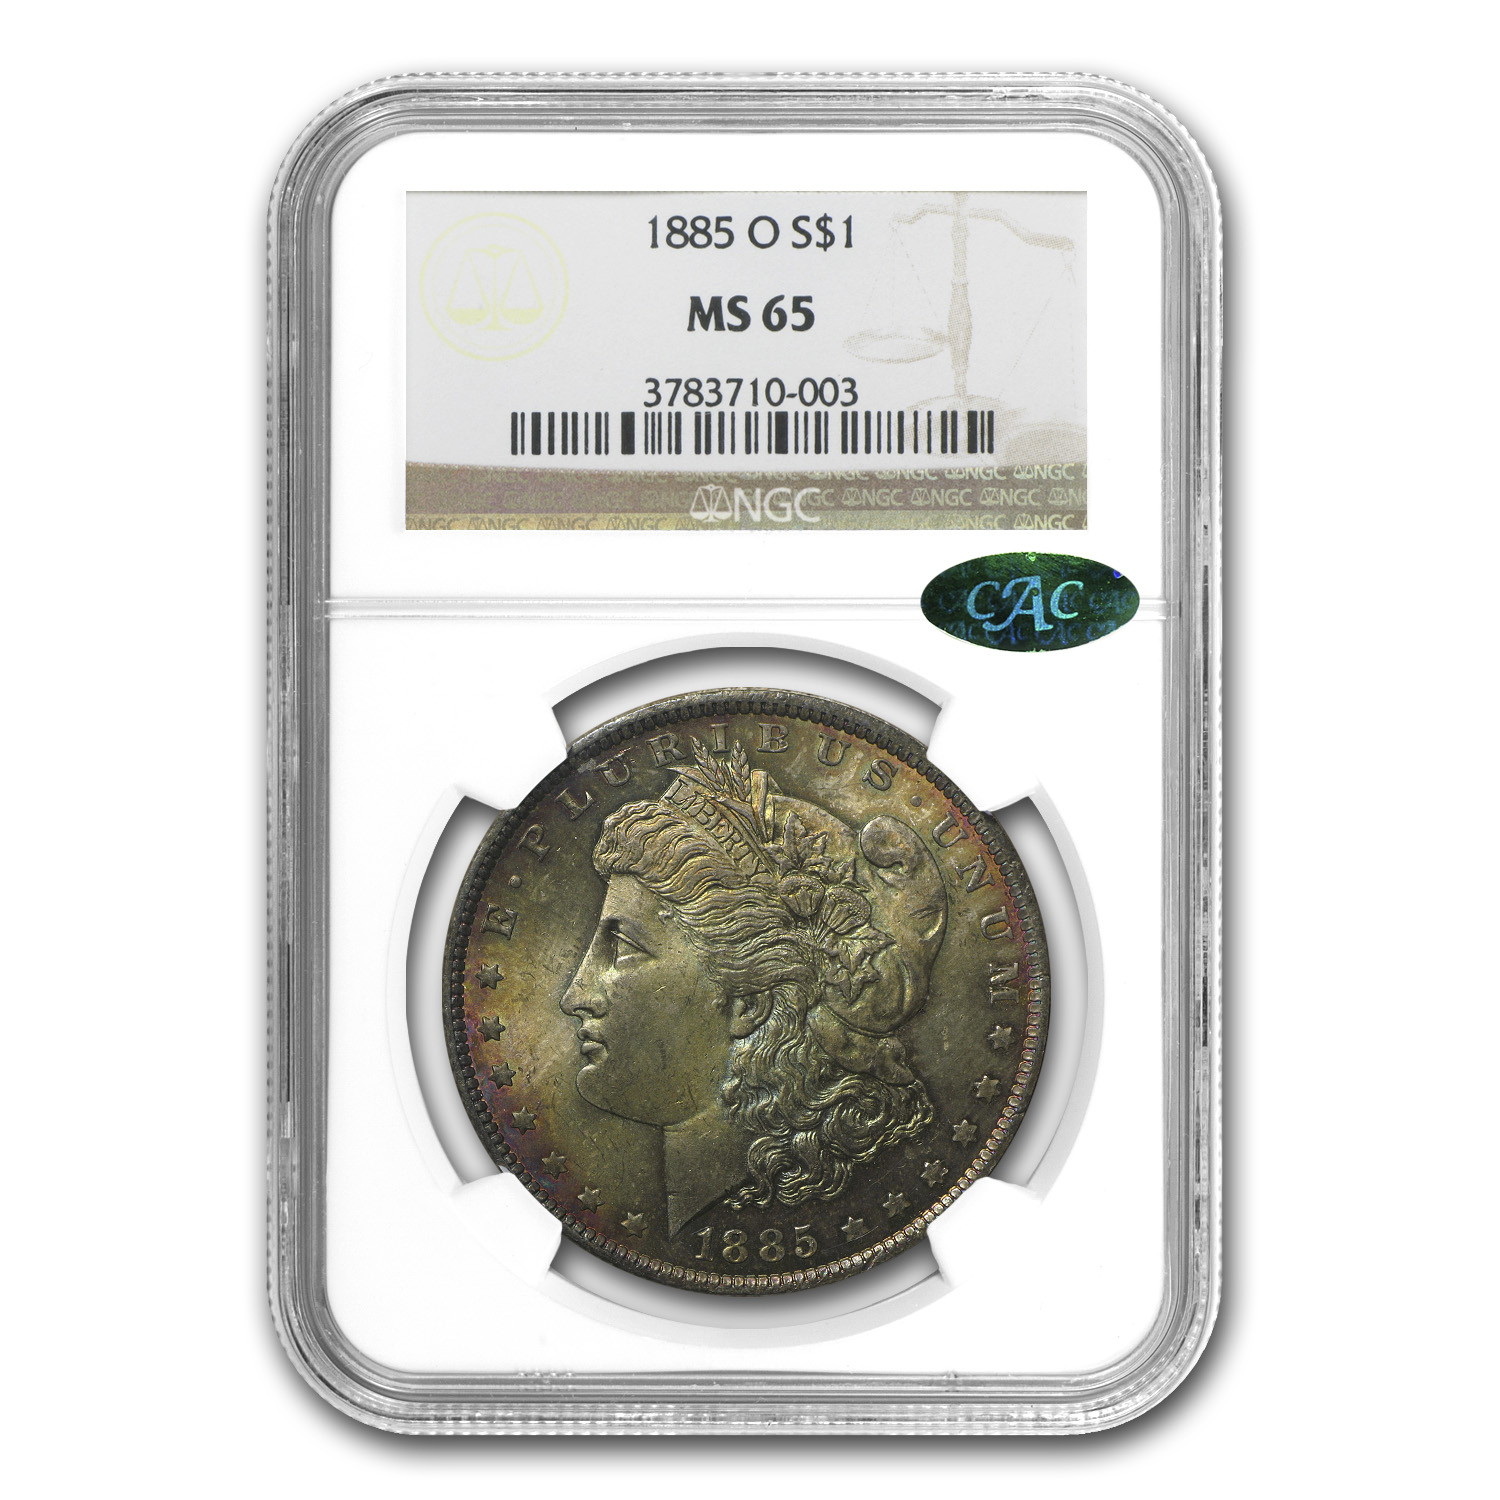 1885-O Morgan Dollar MS-65 NGC - CAC - Fire Toning